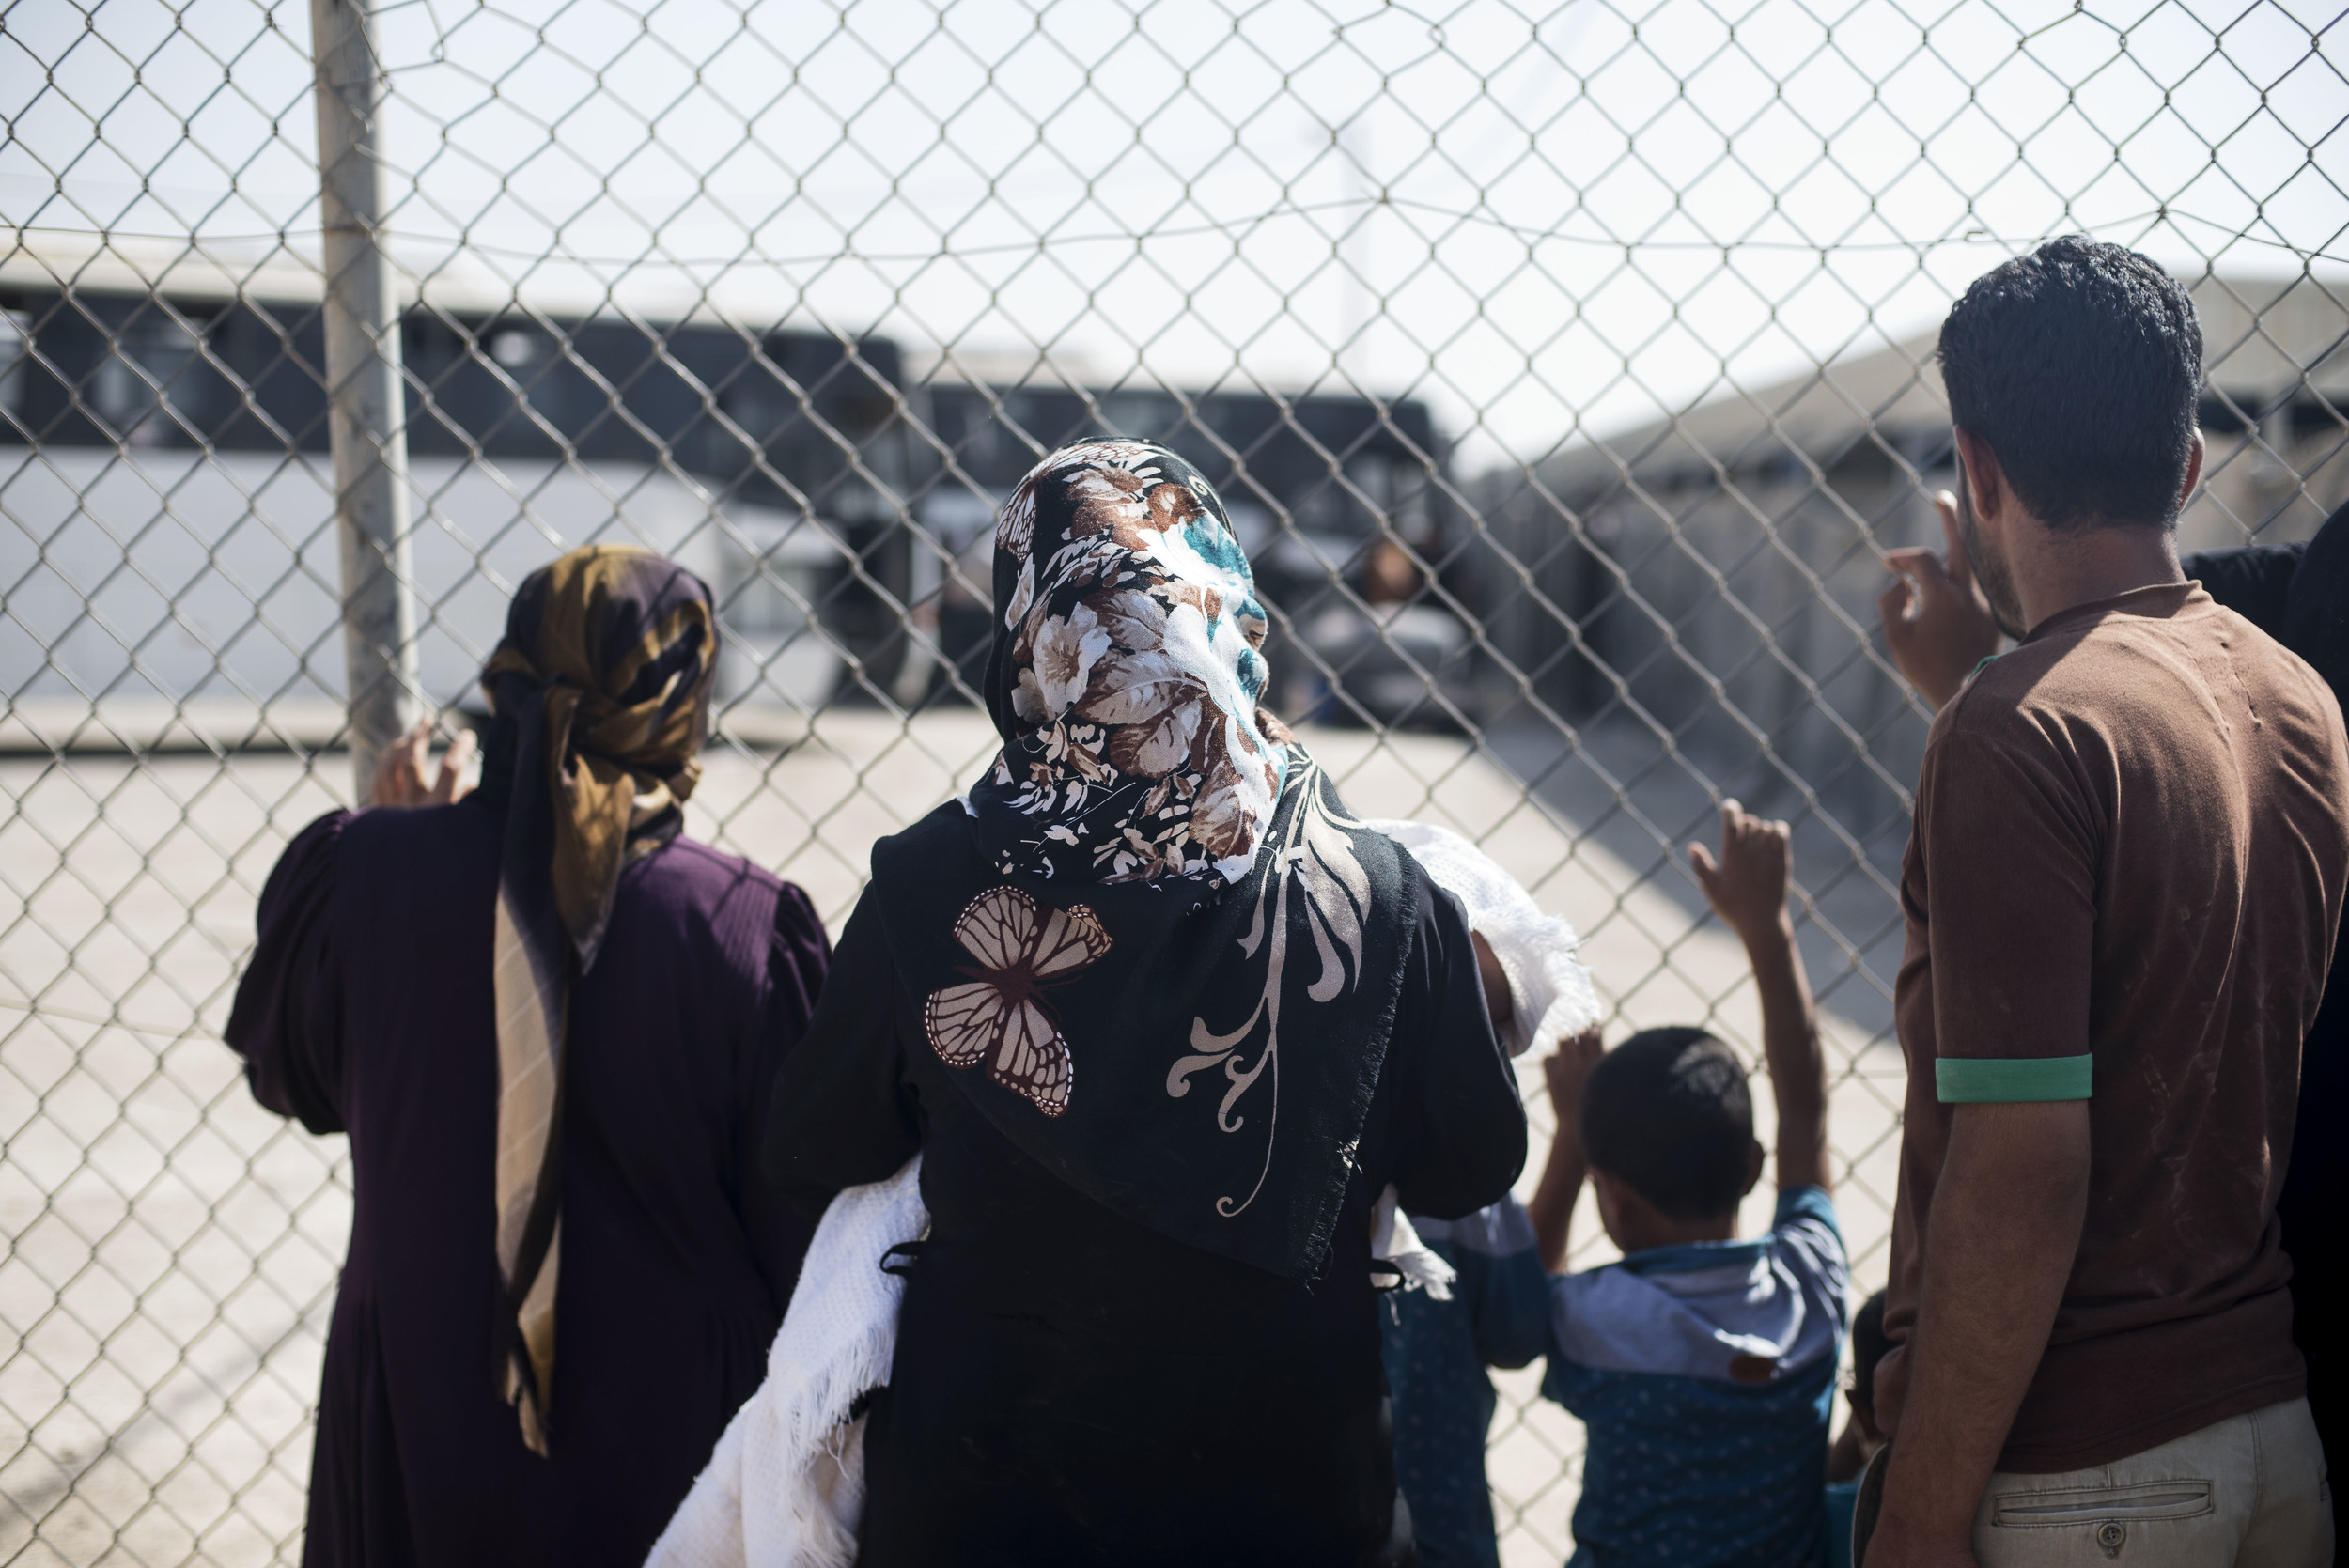 Zaatari camp residents watch as family members load onto buses headed out of the camp and back to Syria. October 2015.